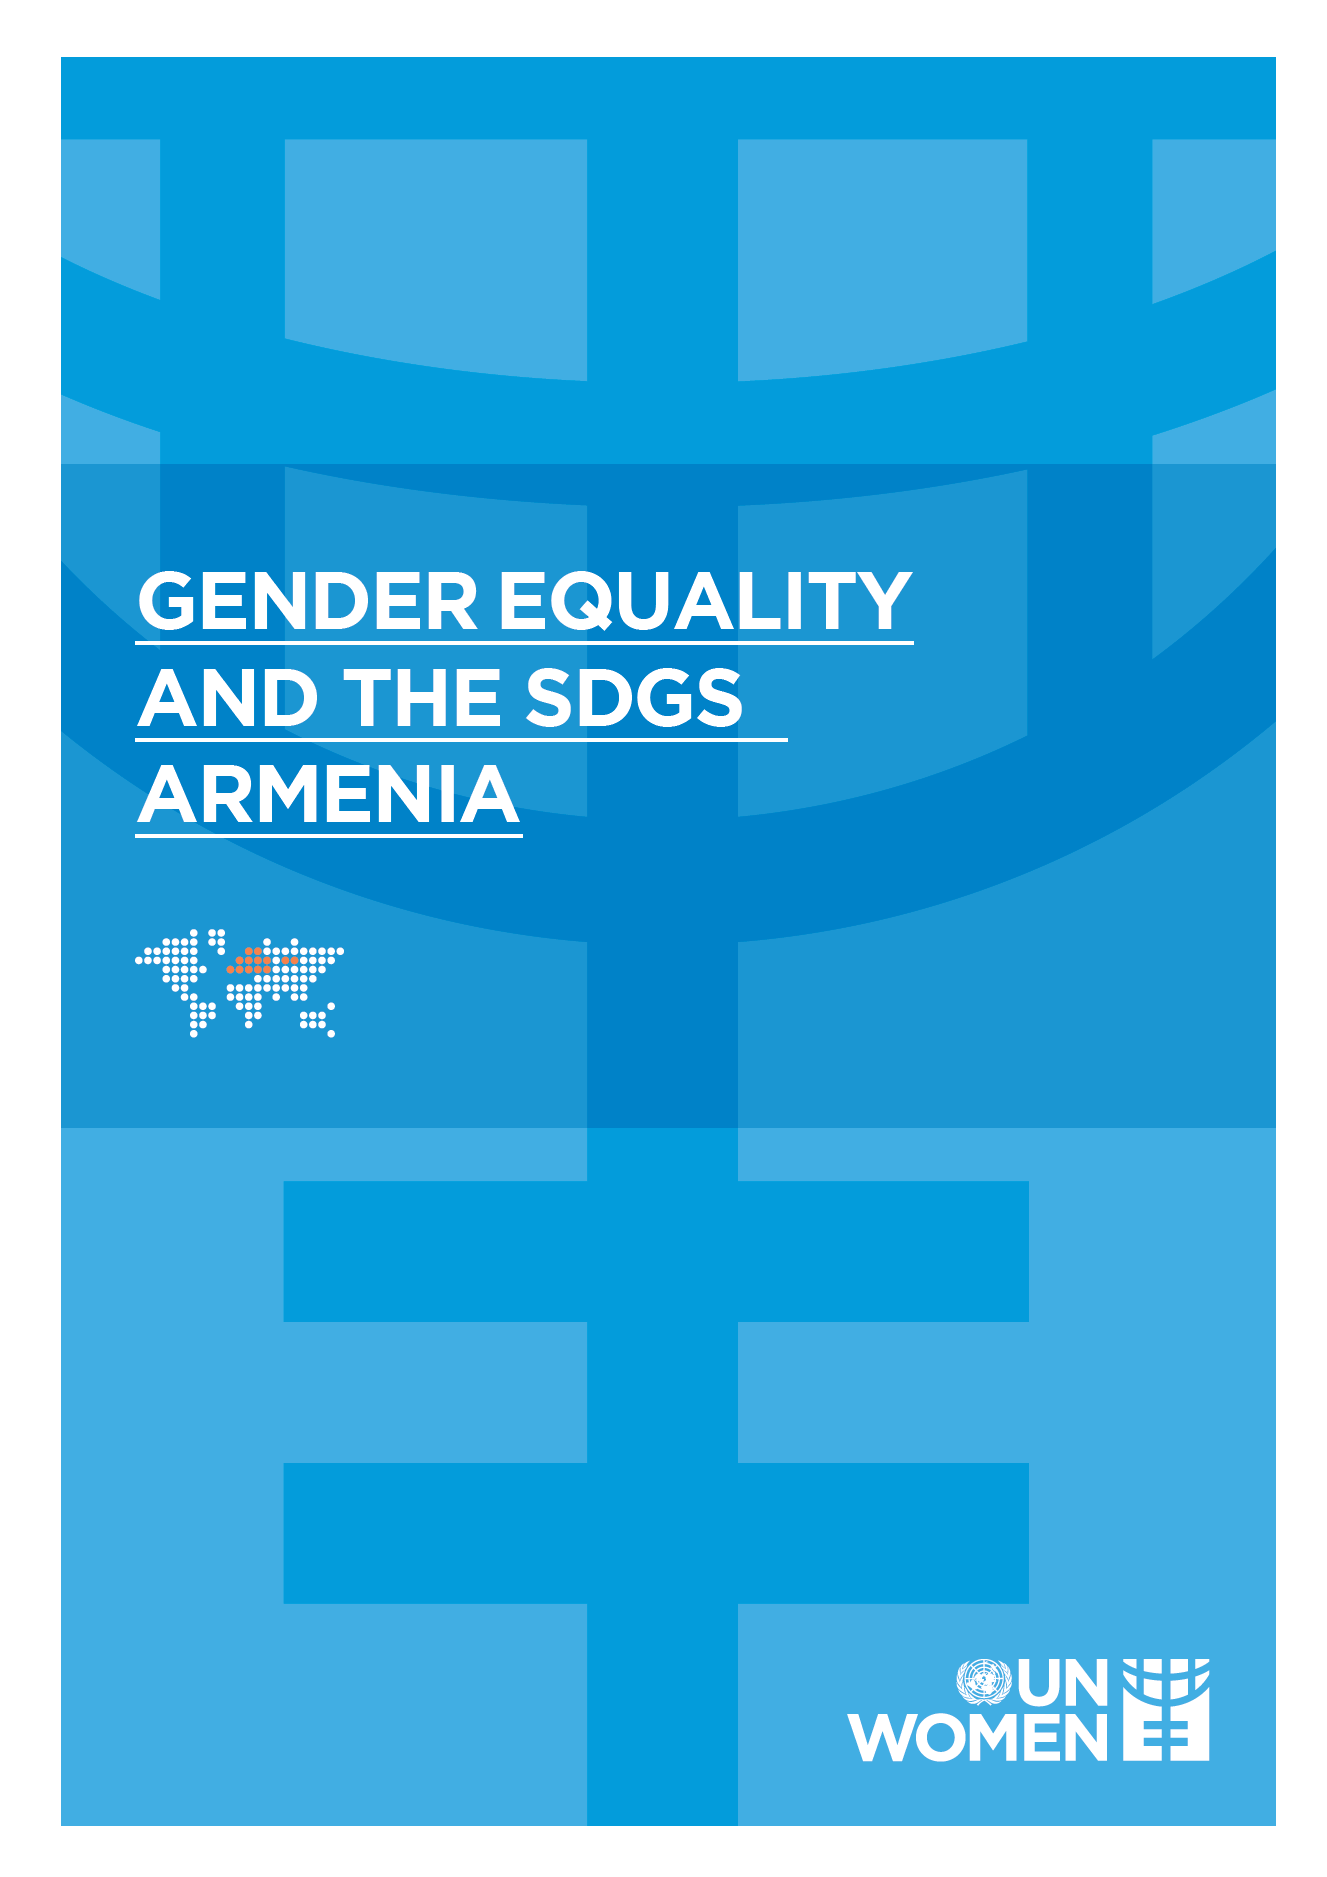 Gender equality and SDGs cover